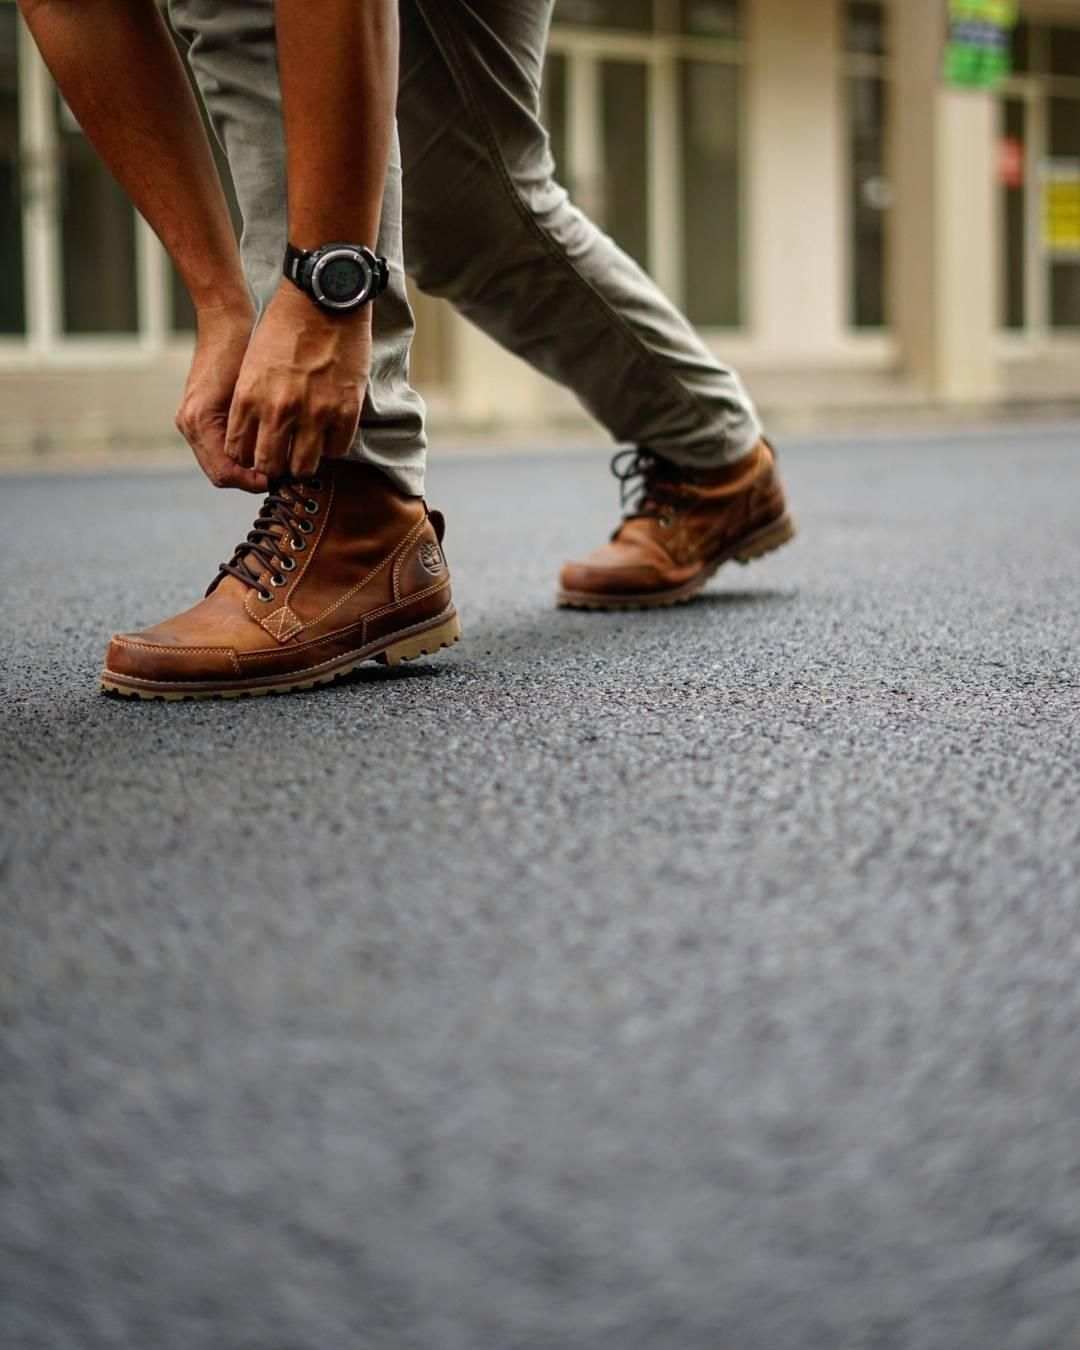 Sneakers outfit men, Mens boots fashion